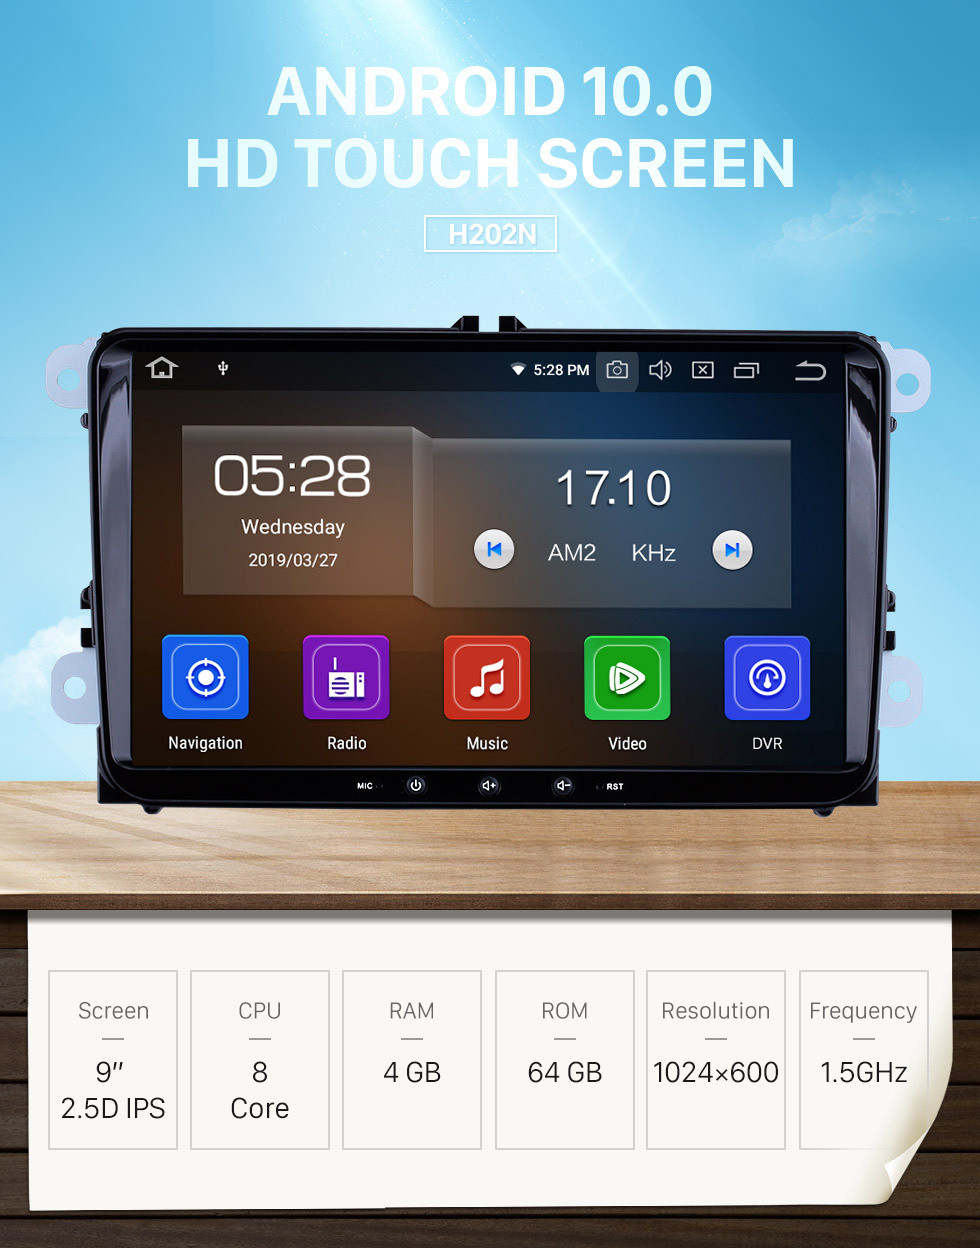 Seicane Android 10.0 Car Stereo for 2010-2013 VW Volkswagen POLO Multivan with touch Screen 3G WiFi DVD Player Bluetooth Radio Mirror Link OBD2 DVR Rearview Camera Steering wheel control